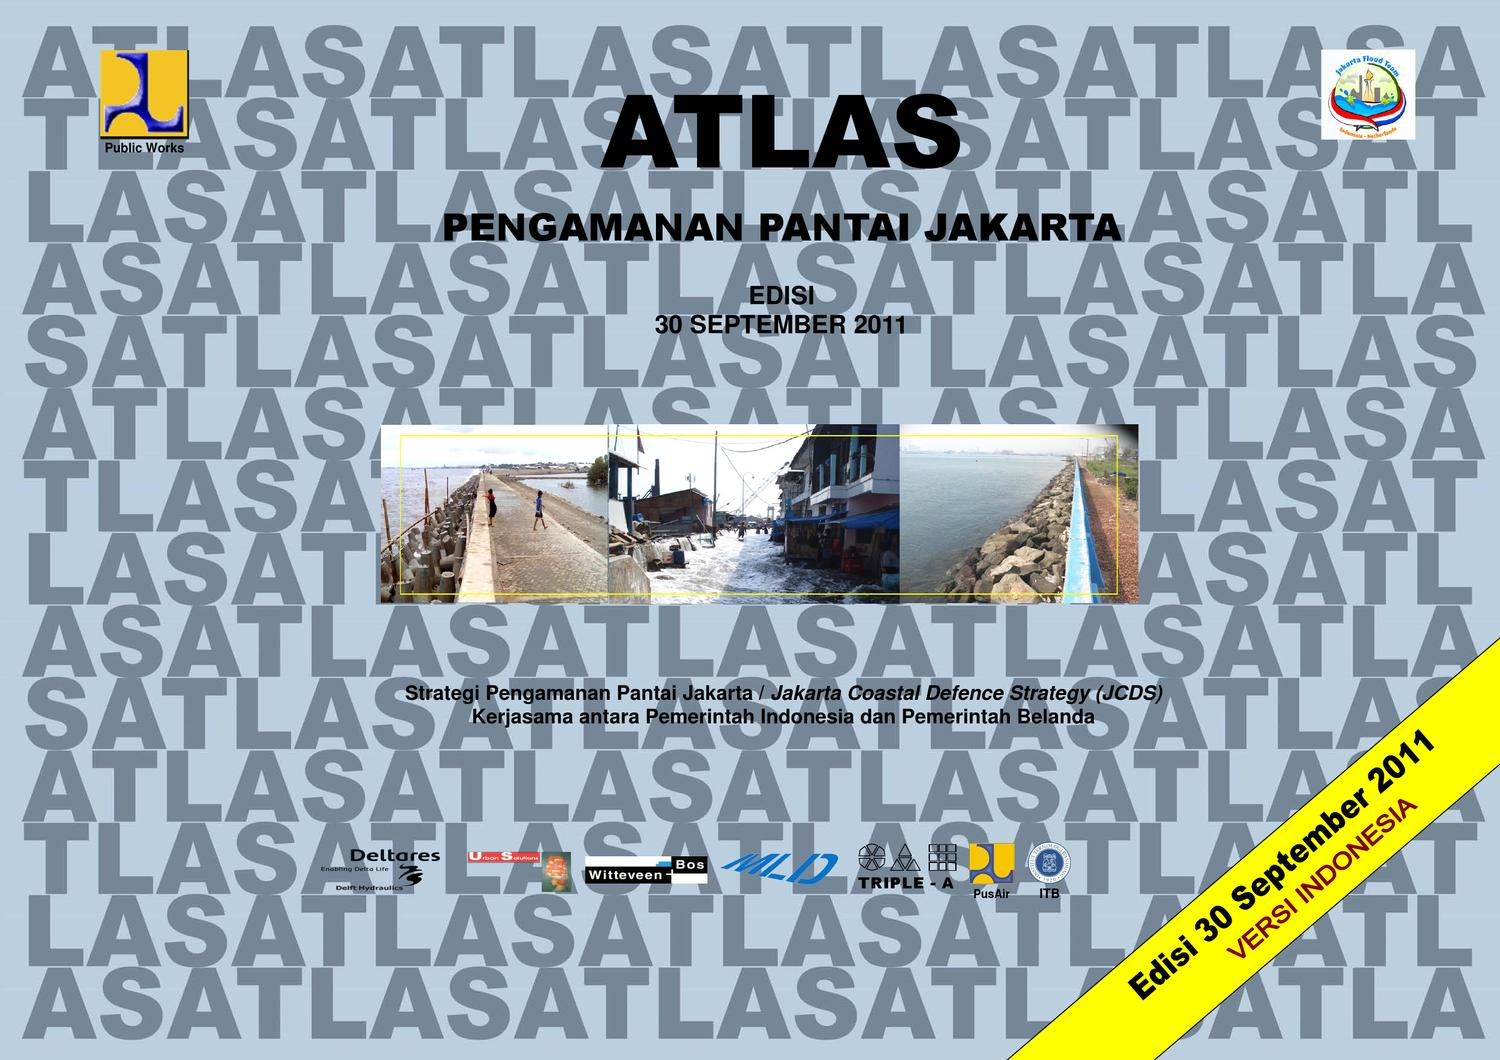 JCDS Atlas By Rujak RCUS Issuu